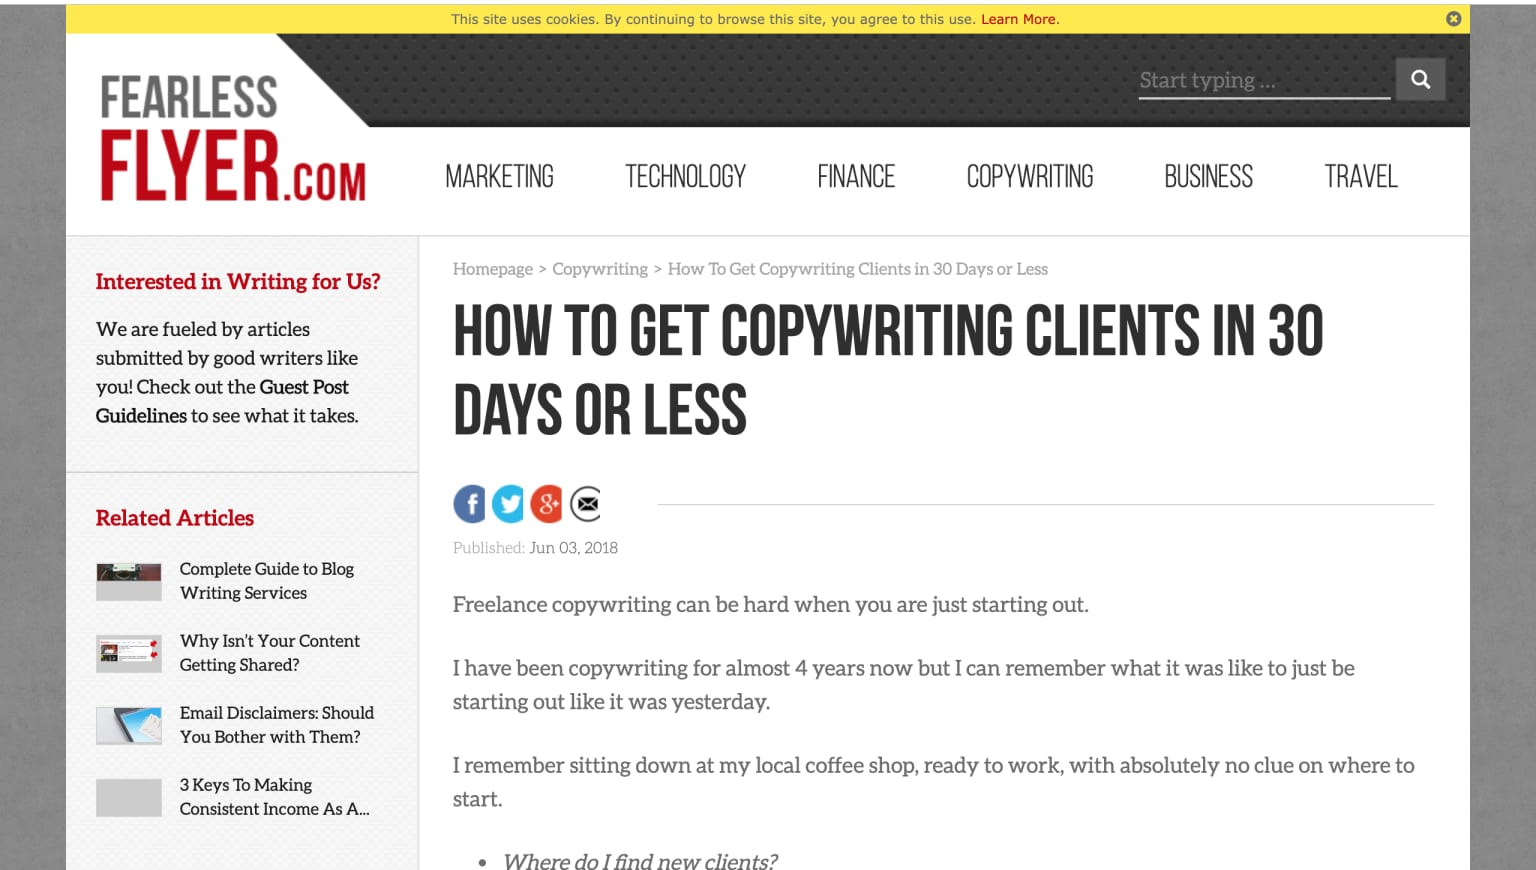 How To Get Copywriting Clients in 30 Days or Less